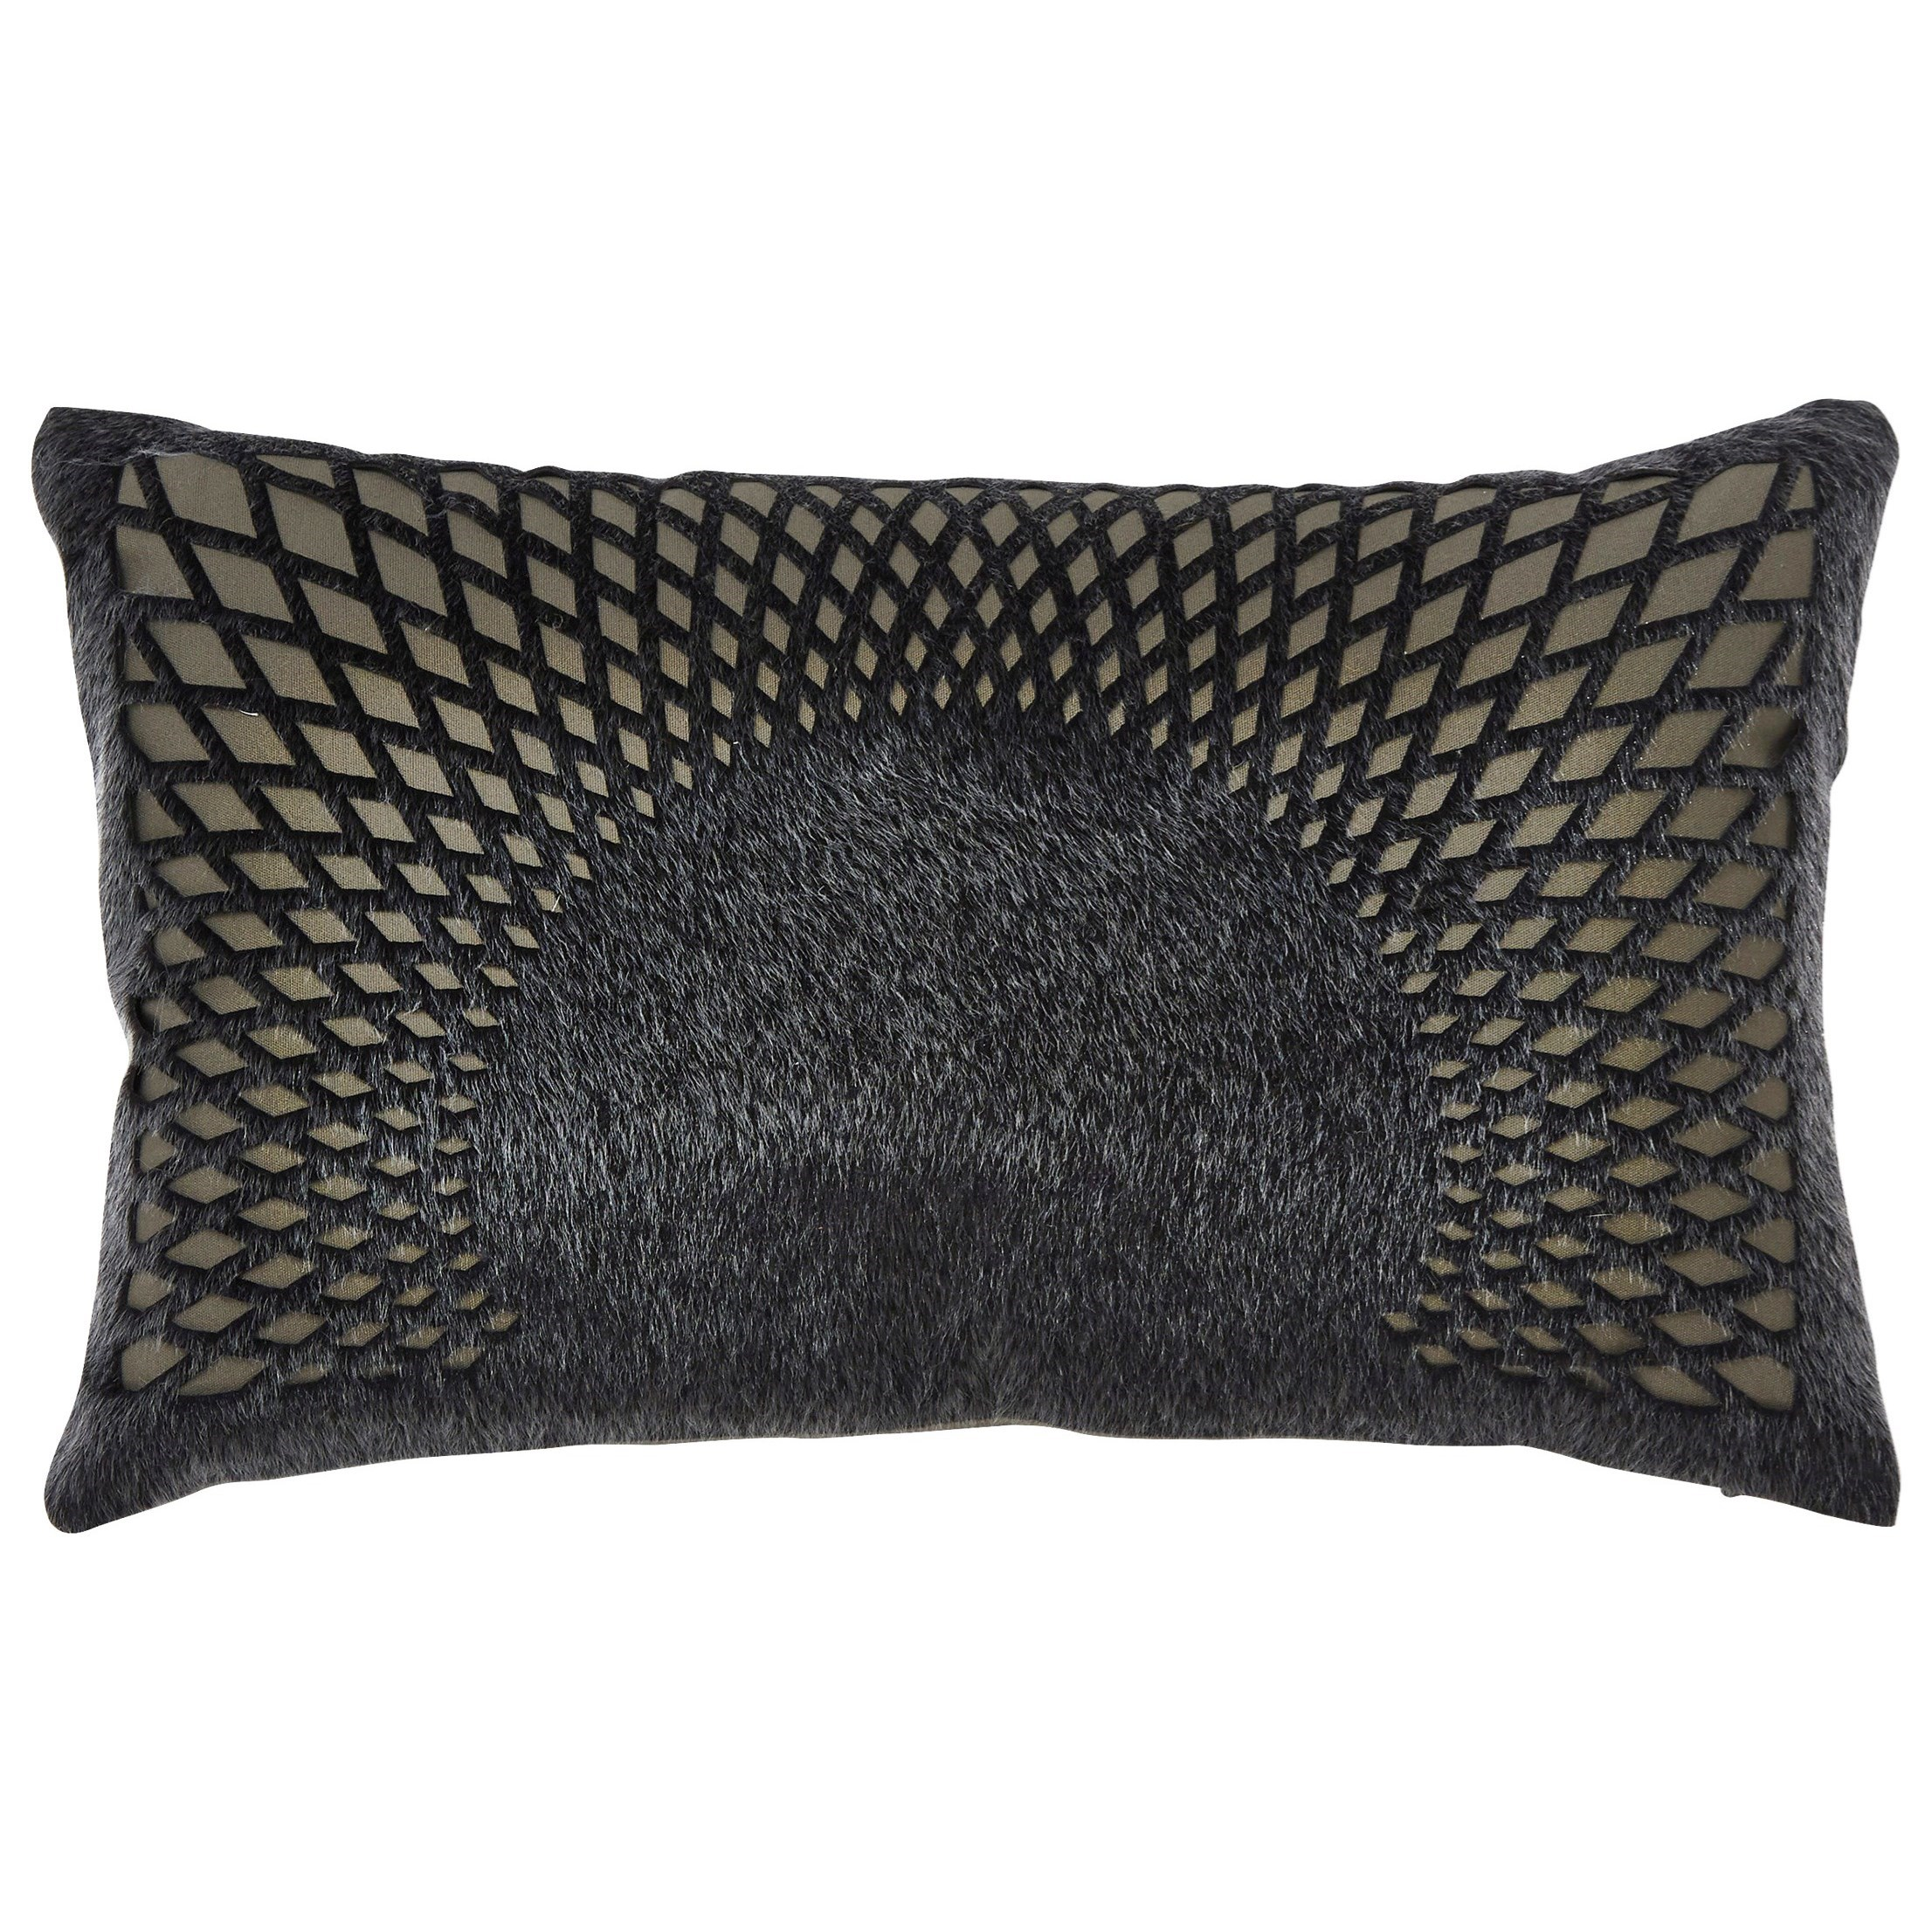 Signature Design by Ashley Pillows Lazarus Black Pillow - Item Number: A1000352P